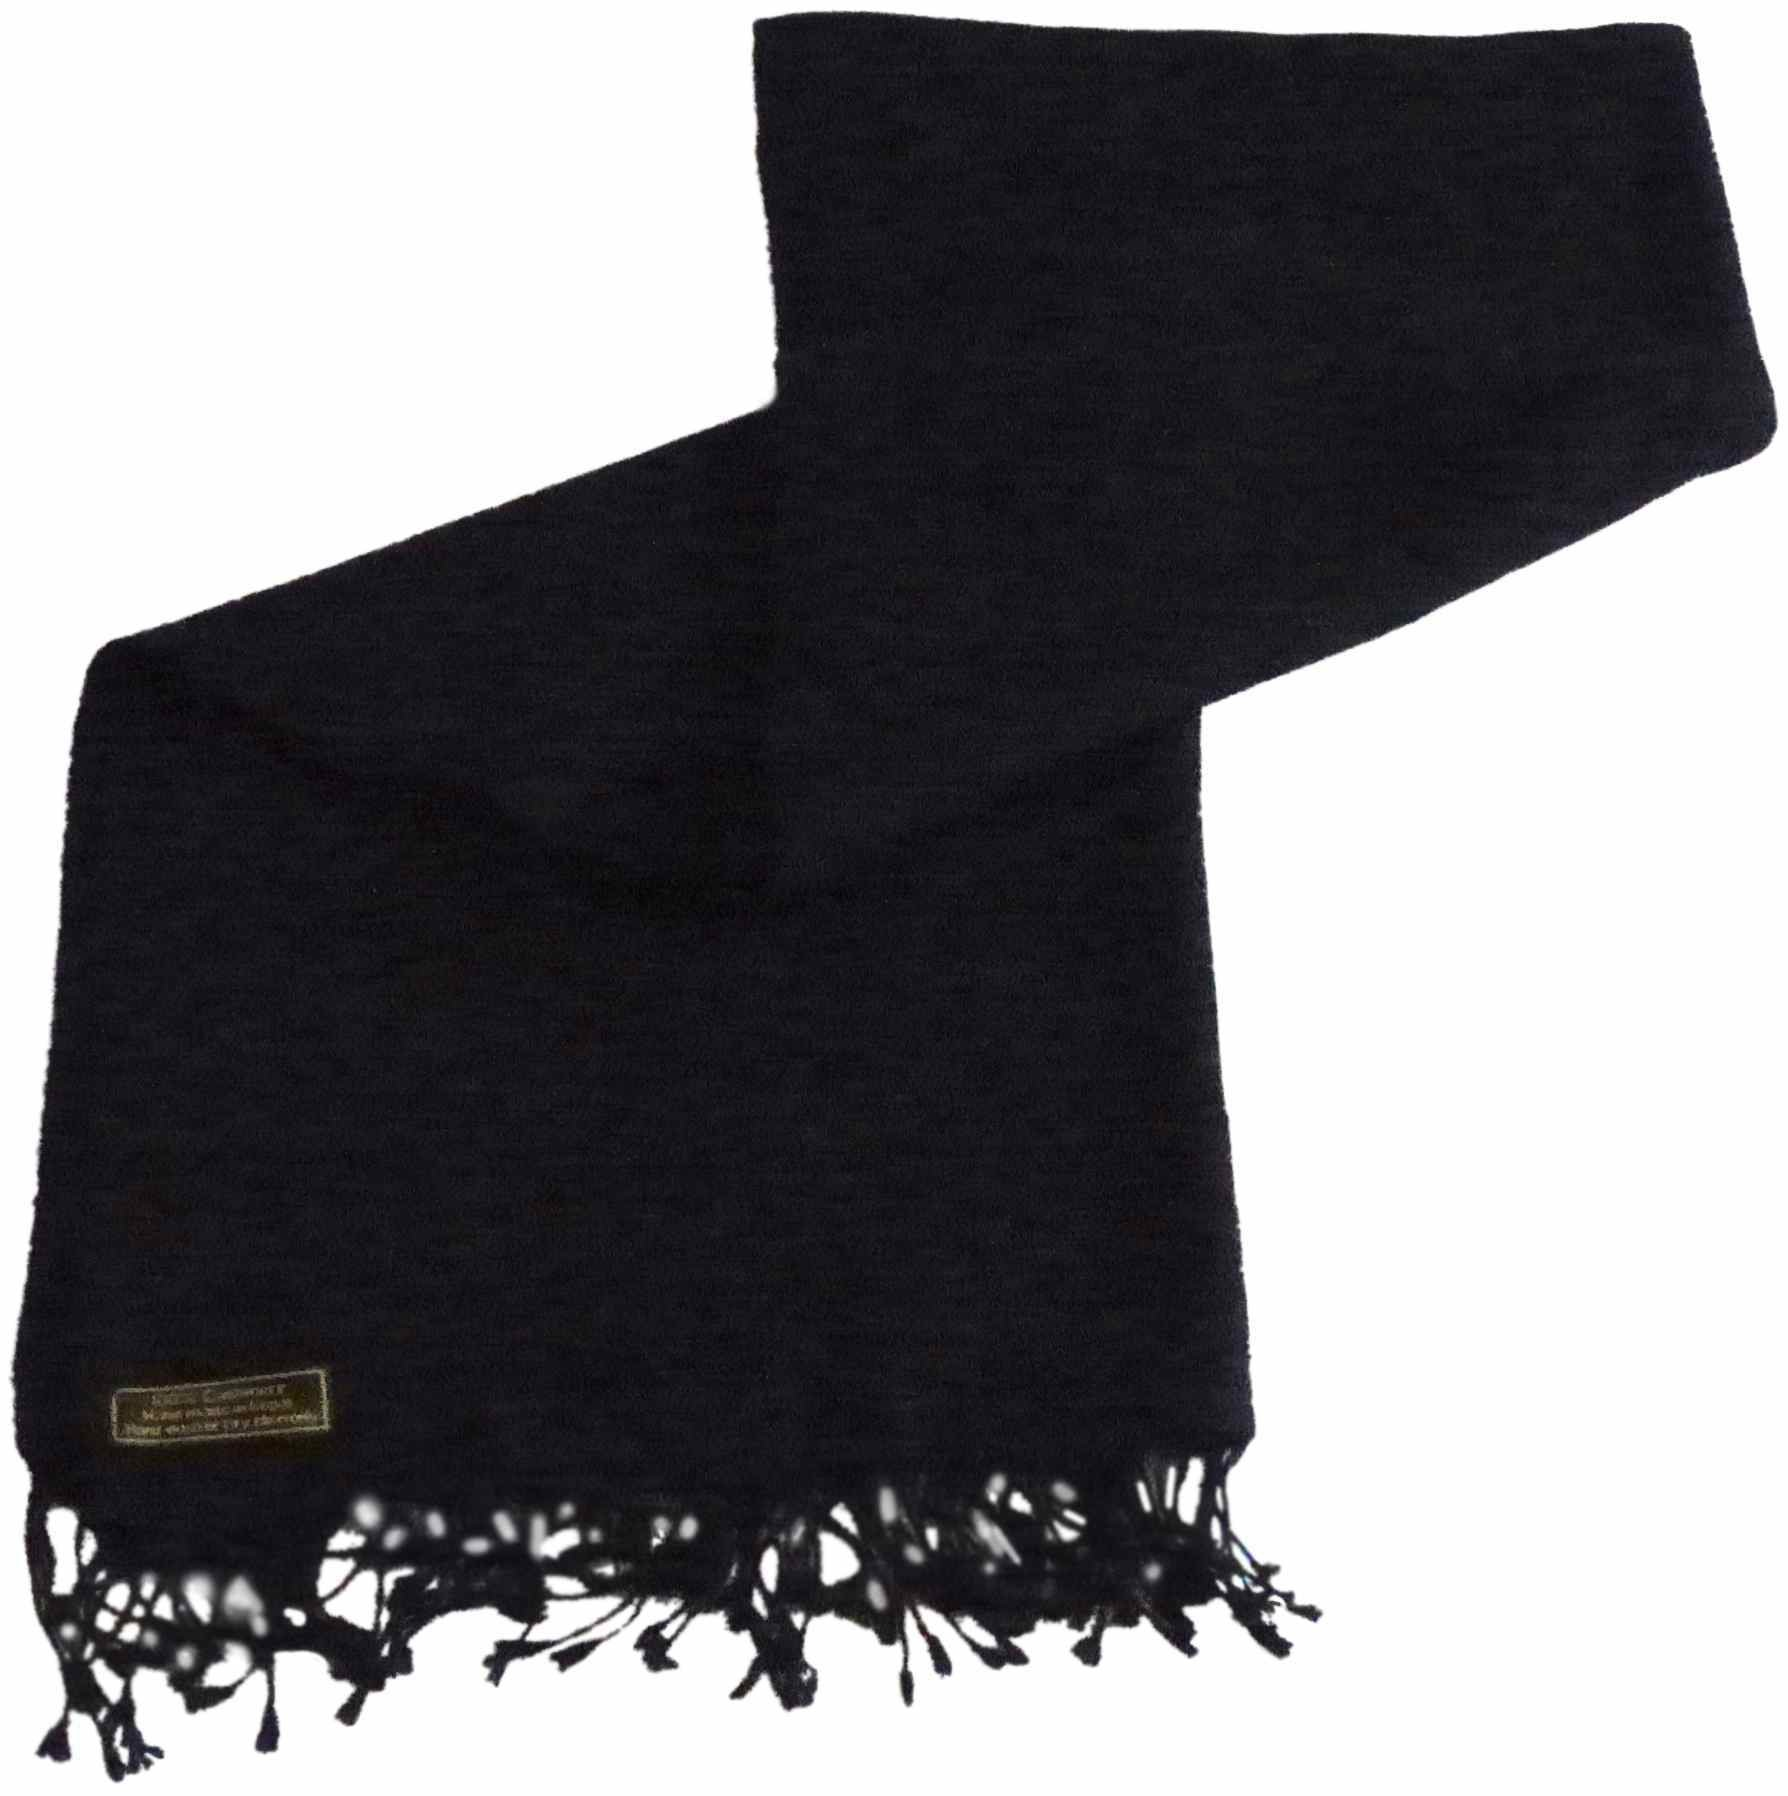 Black High Grade 100% Cashmere Shawl Scarf Wrap Pashmina Hand Made in Nepal NEW